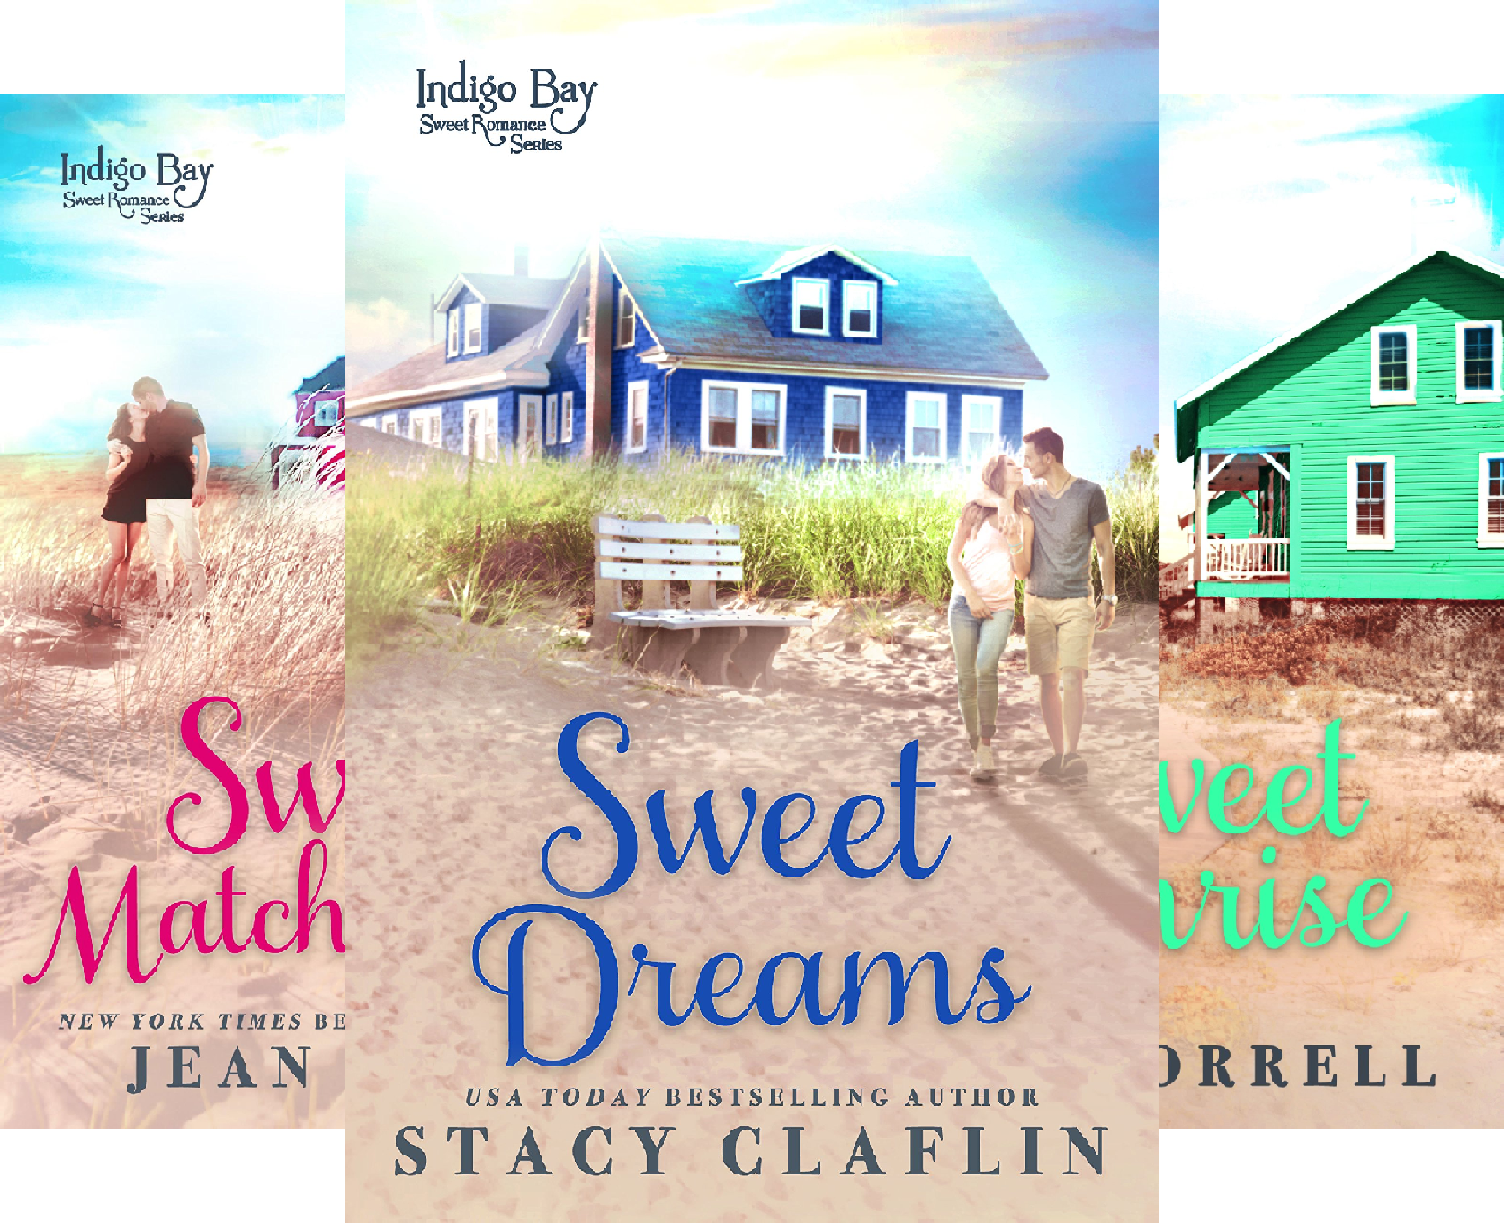 Books : Indigo Bay Sweet Romance Series (12 Book Series)